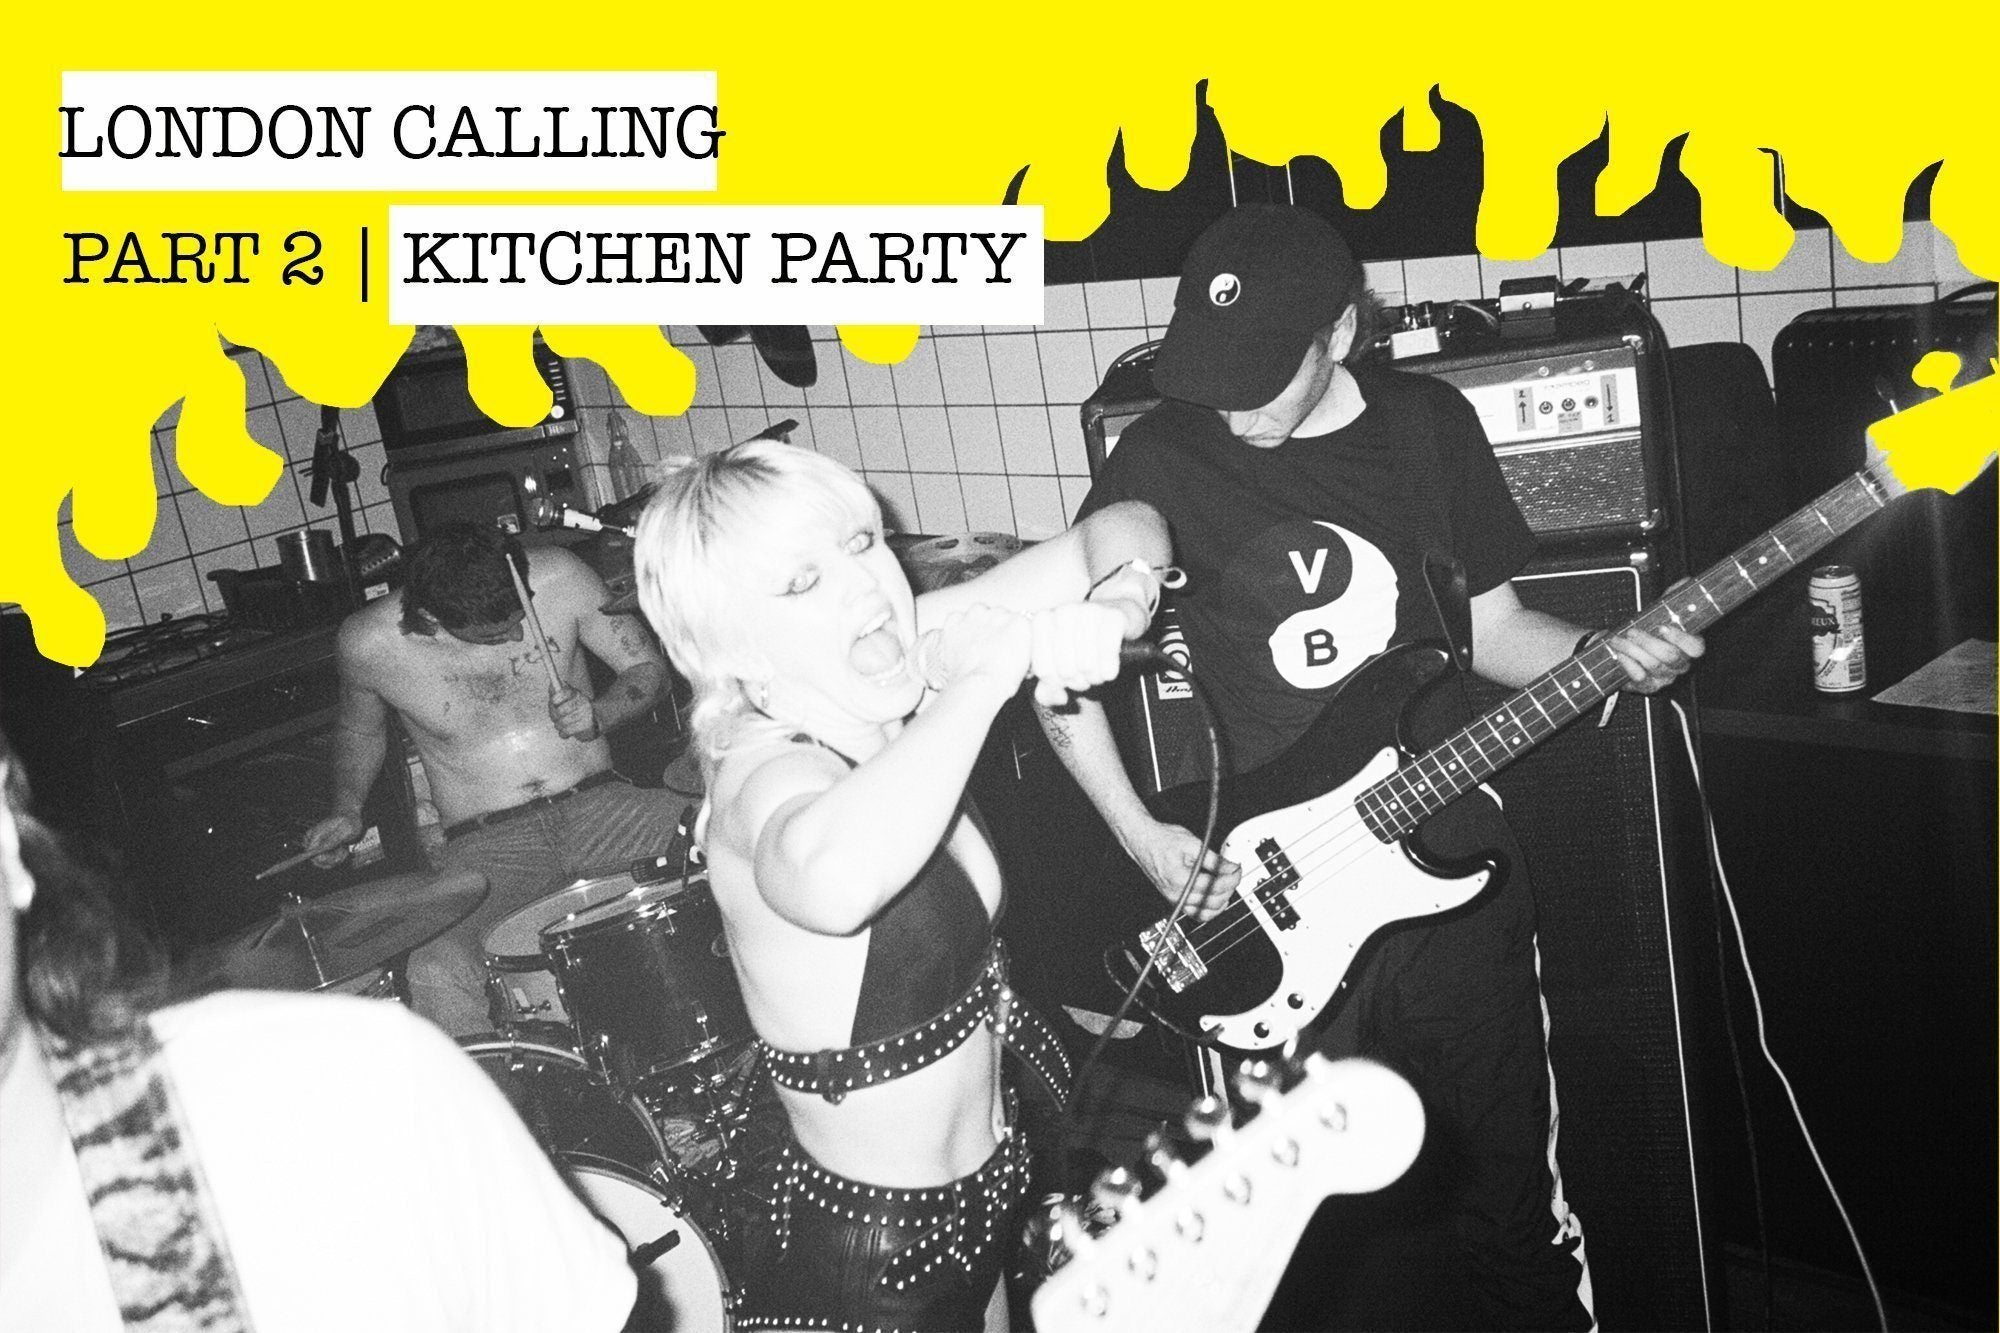 LONDON CALLING | (Part 2) Kitchen Party